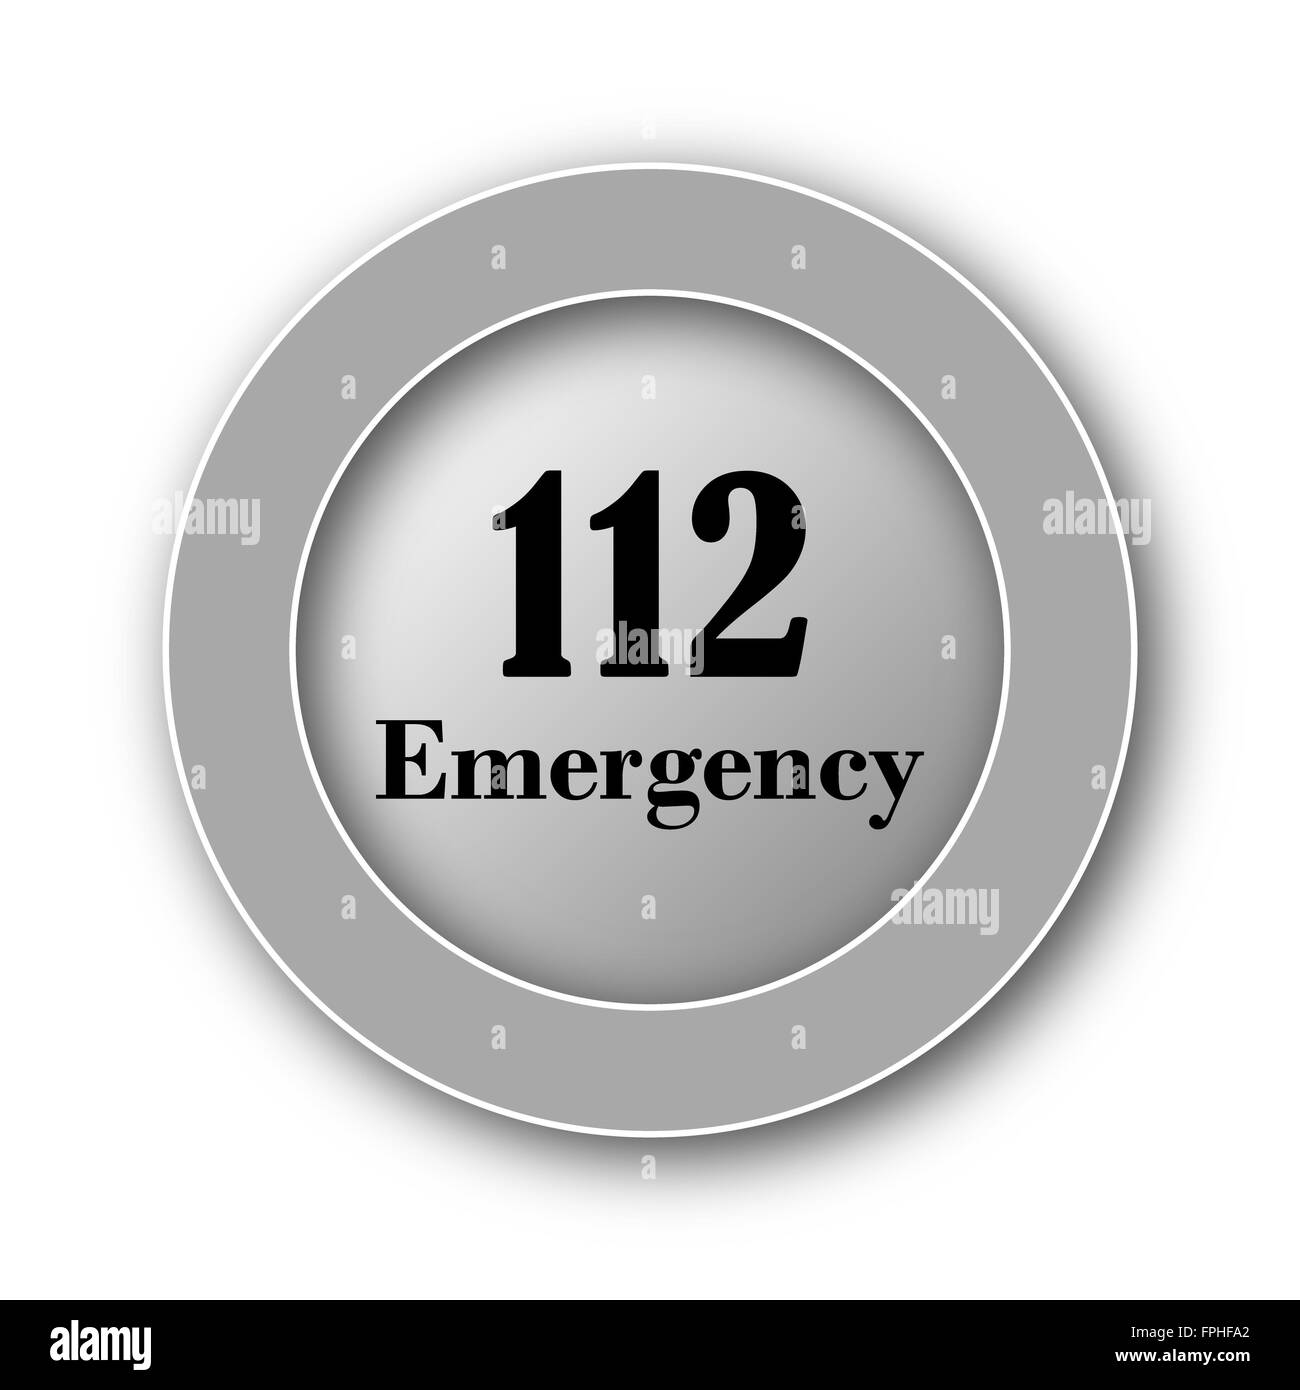 112 Emergency icon. Internet button on white background. - Stock Image